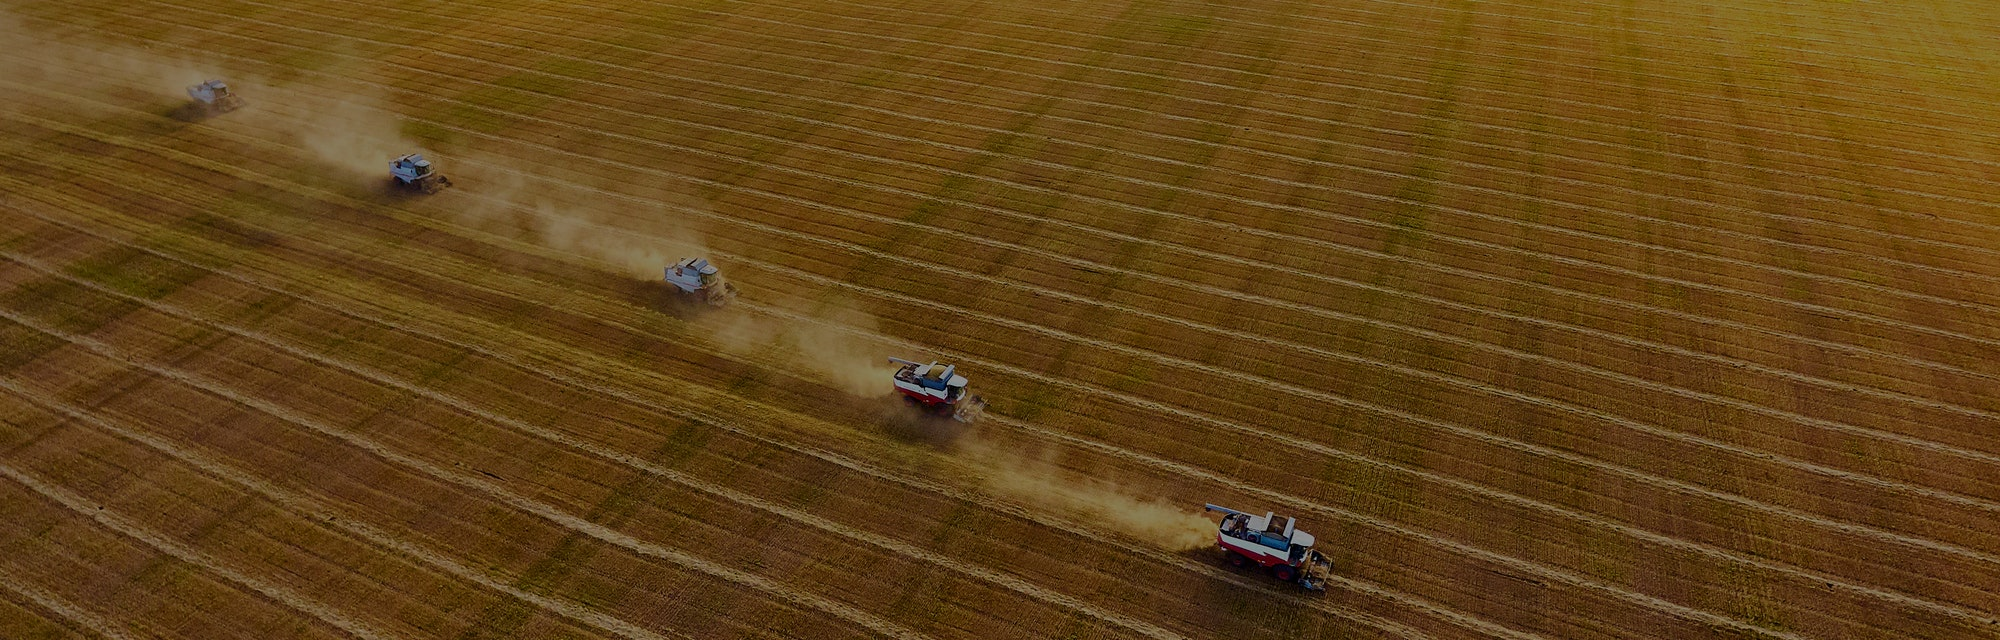 Harvesting of wheat. Combine harvesters agricultural machines collecting golden  wheat on the field....